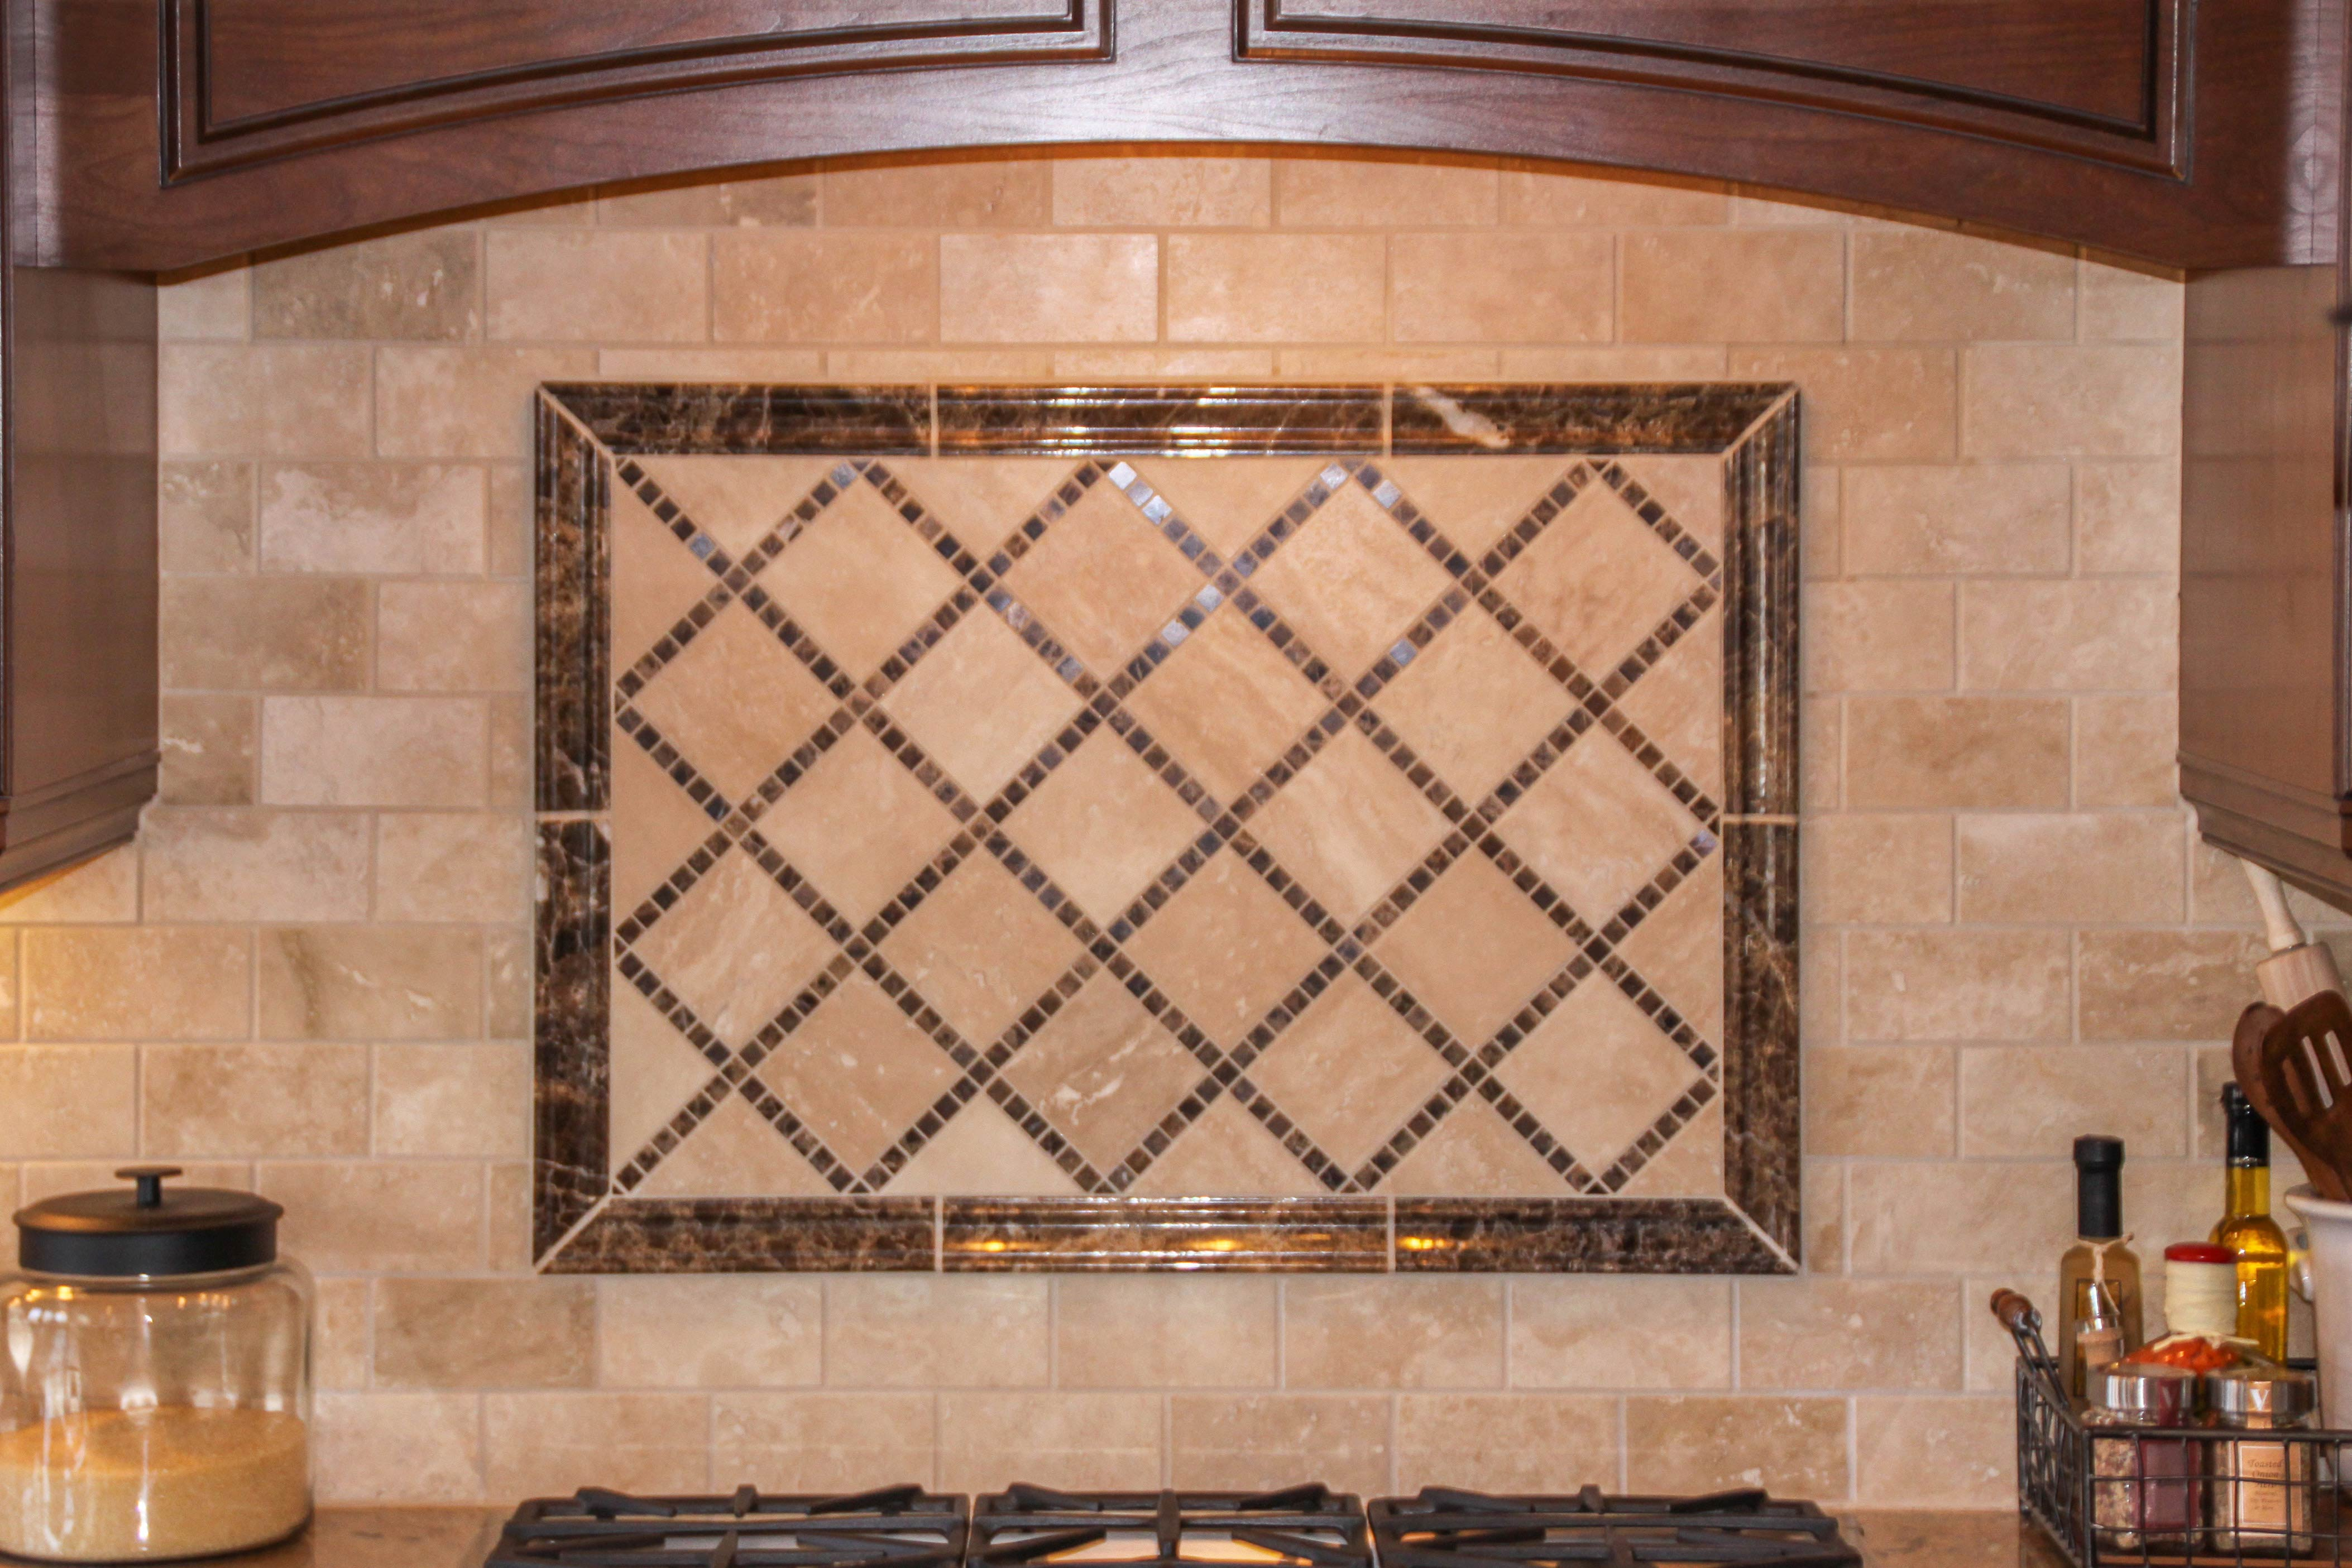 Capital tile and flooring